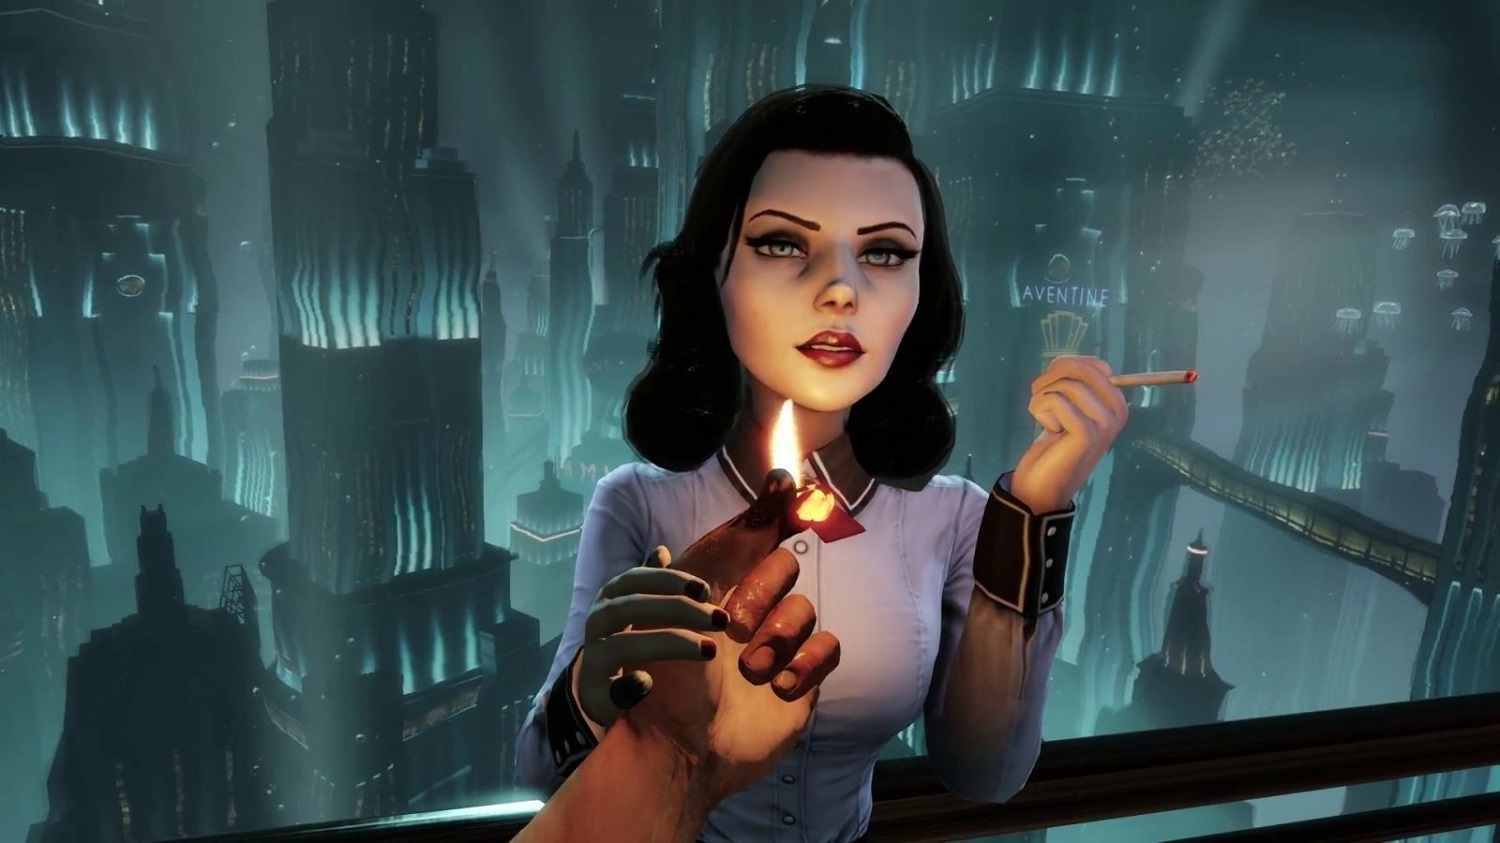 BioShock-Infinite-Burial-at-Sea-Episode-One-Will-Change-Elizabeth-s-Character-Says-Levine-378344-2